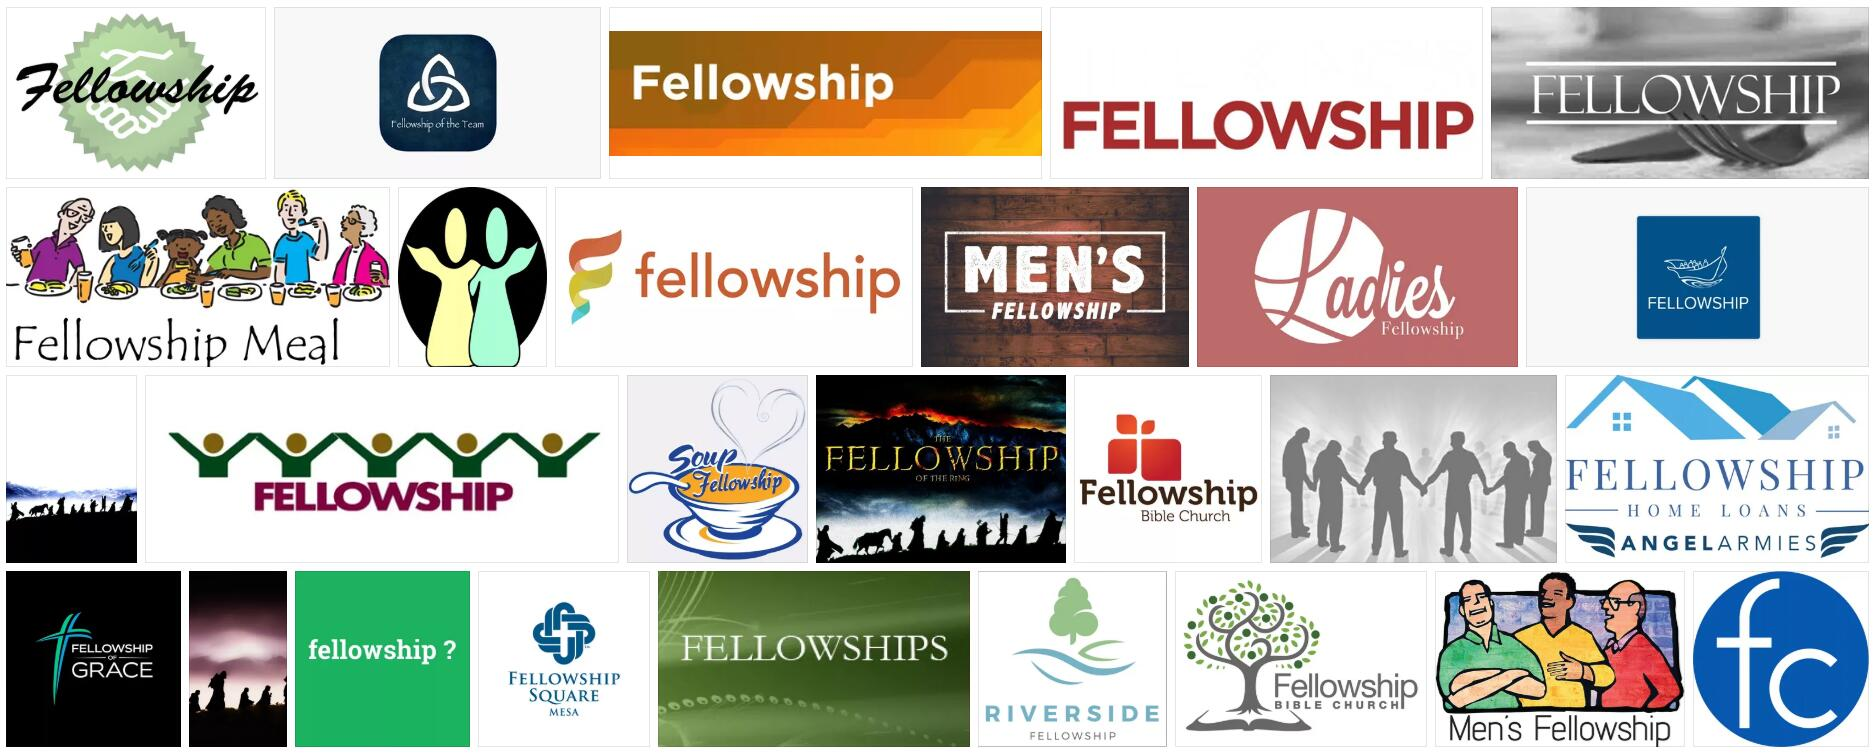 Meaning of Fellowship in English